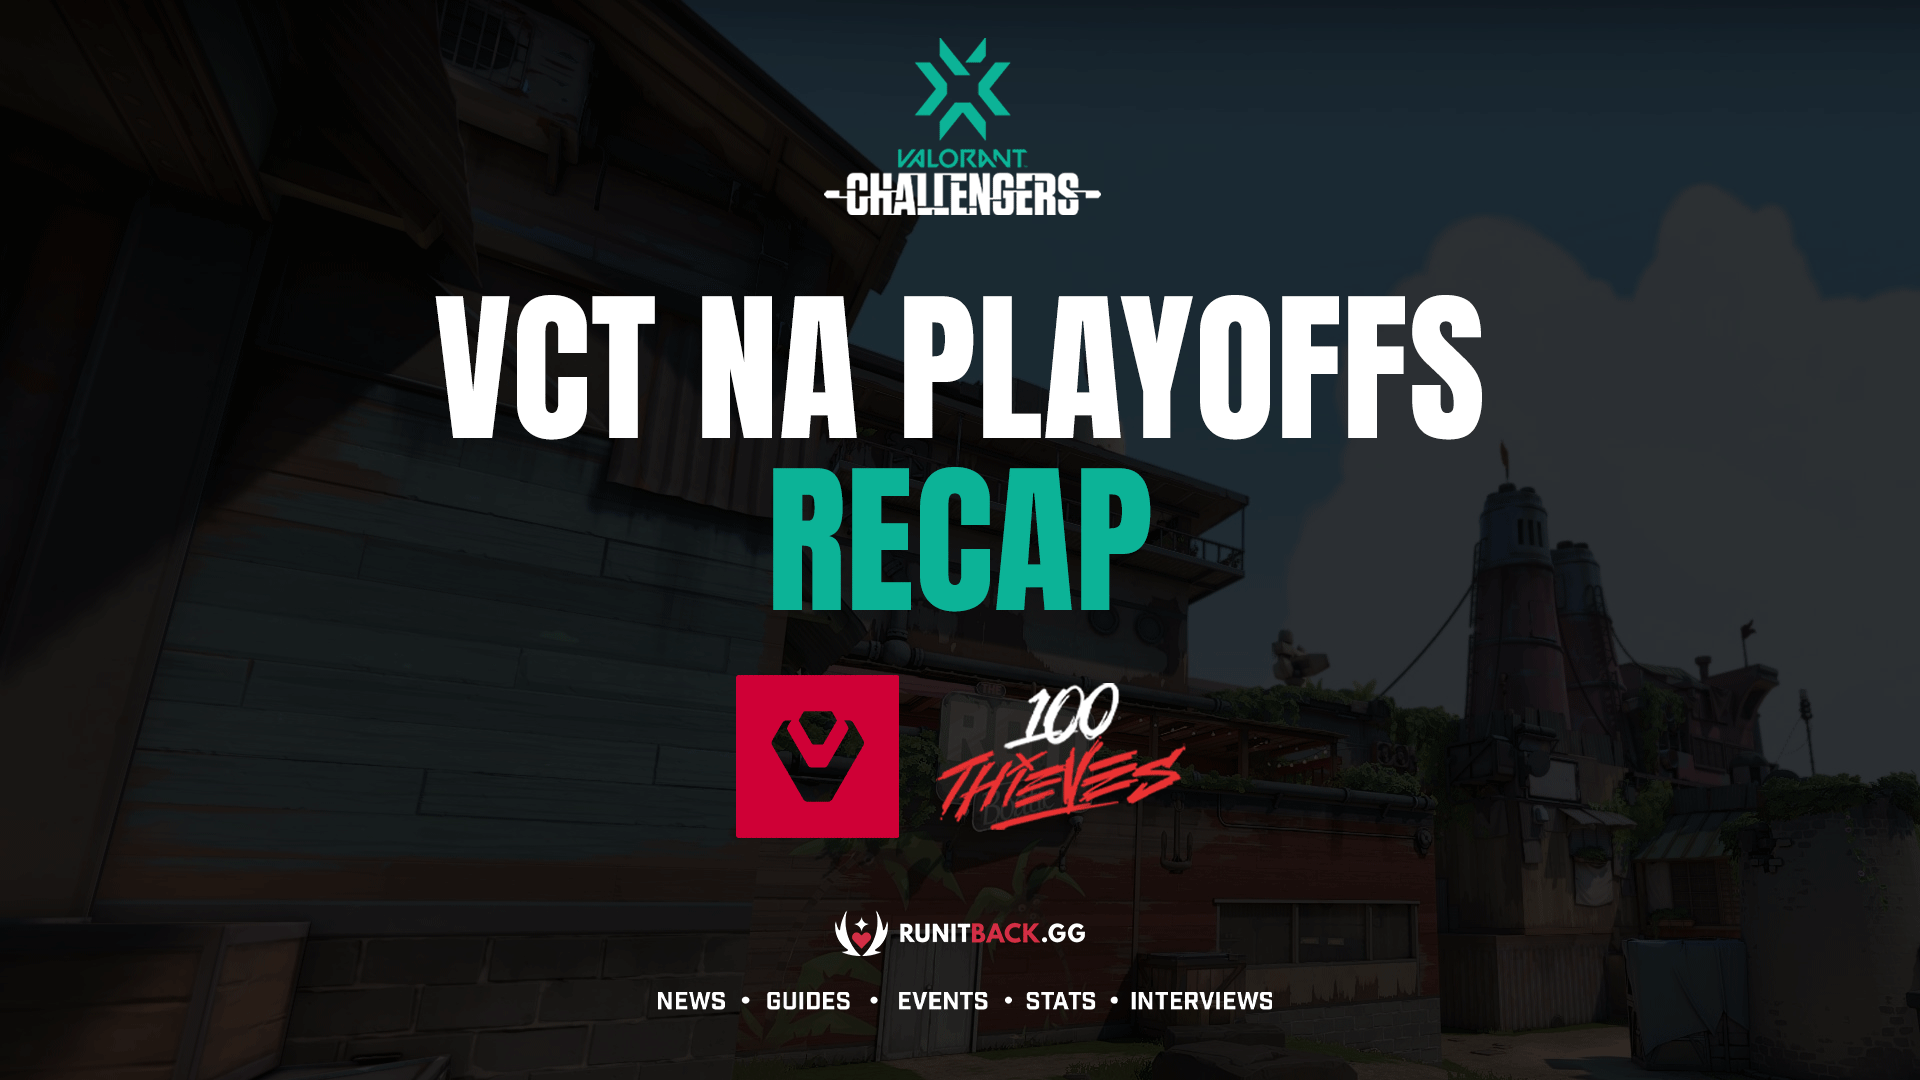 VCT NA Playoffs Grand Final: Sentinels breeze past 100 Thieves